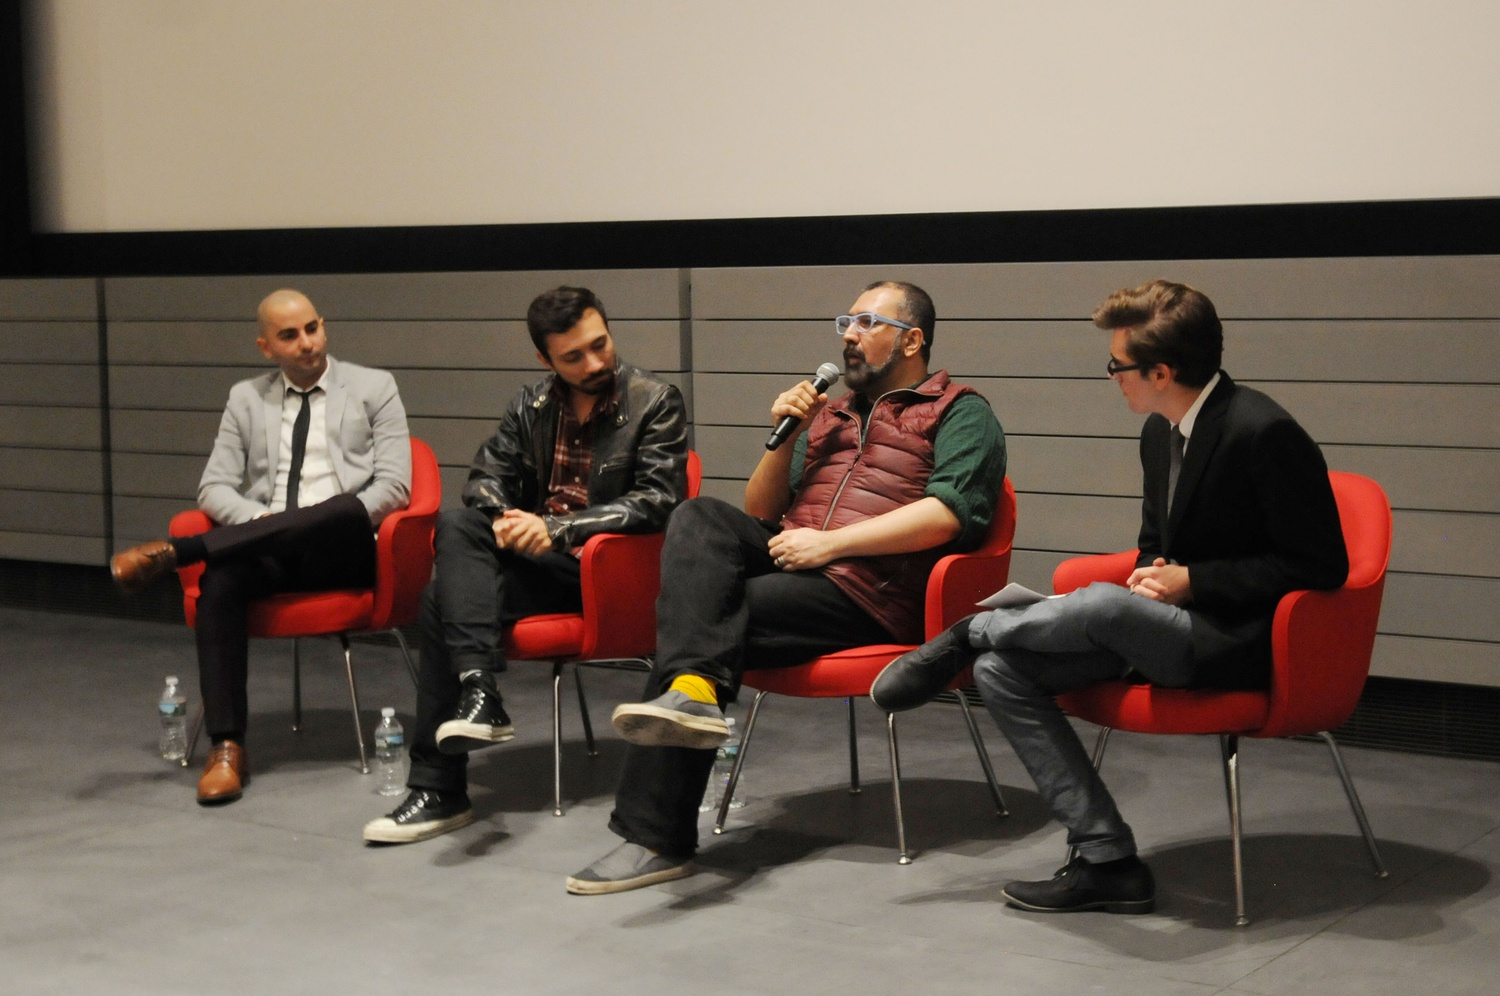 "(from left) Sev Ohanian, David Karlak, and Parvez Sharma participate in ""Industry Panel: New Media"" in Menschel Hall at Harvard Art Museums on Saturday afternoon."